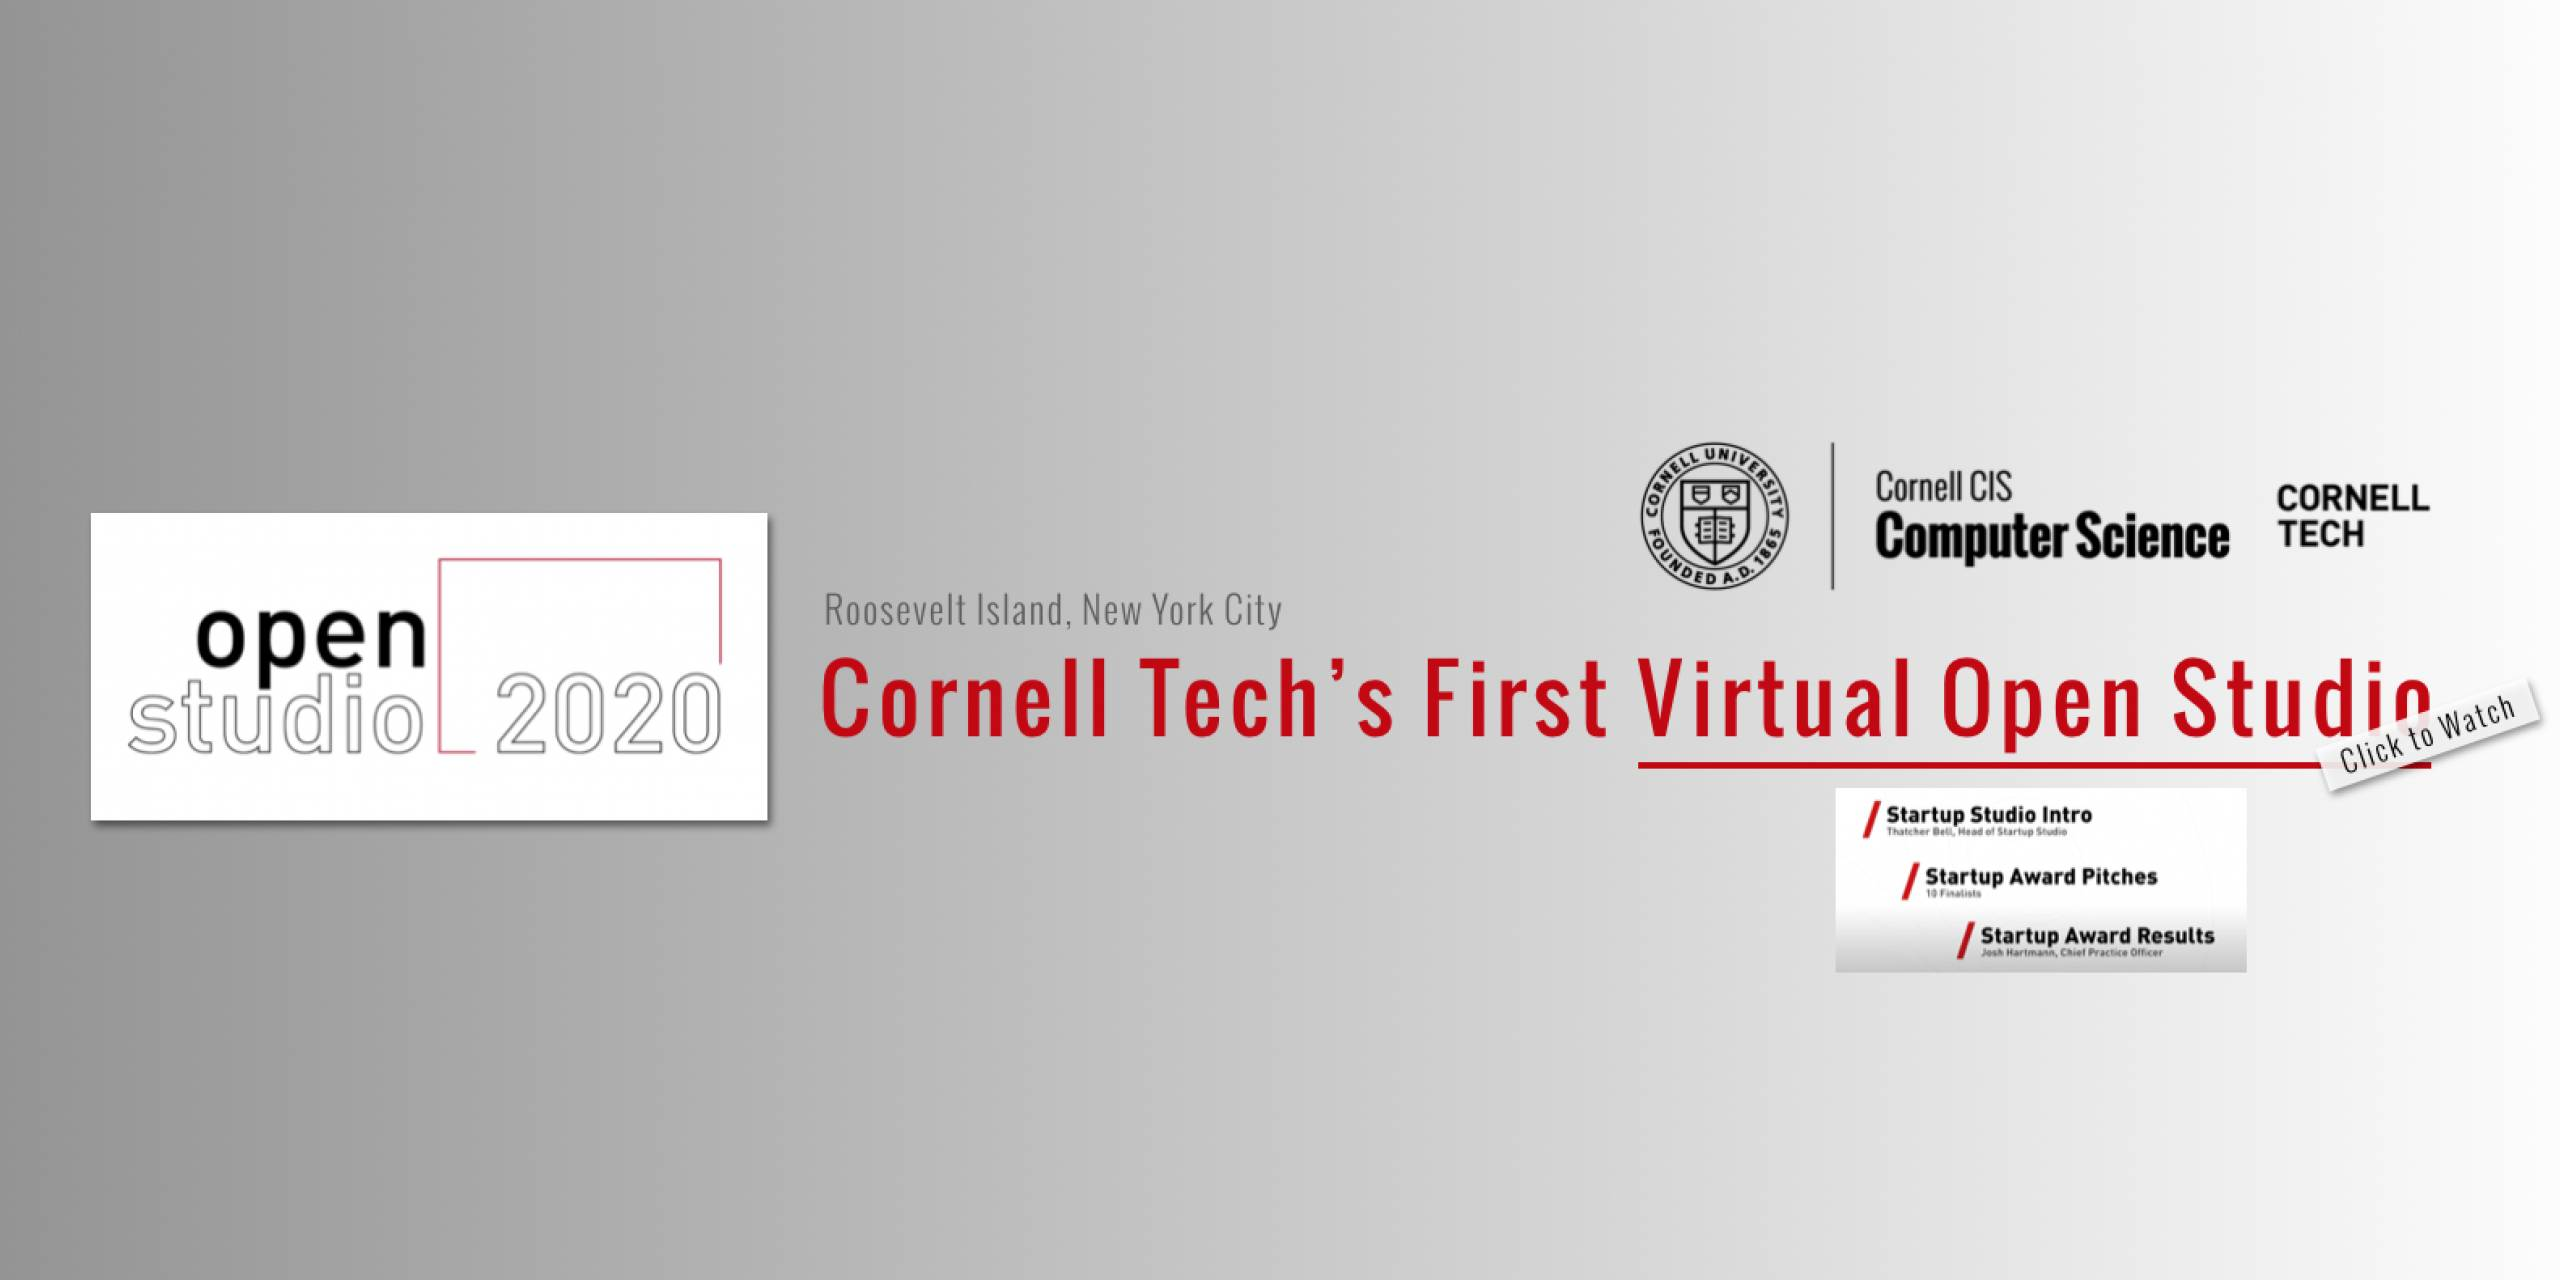 Cornell Tech's First Virtual Open Studio